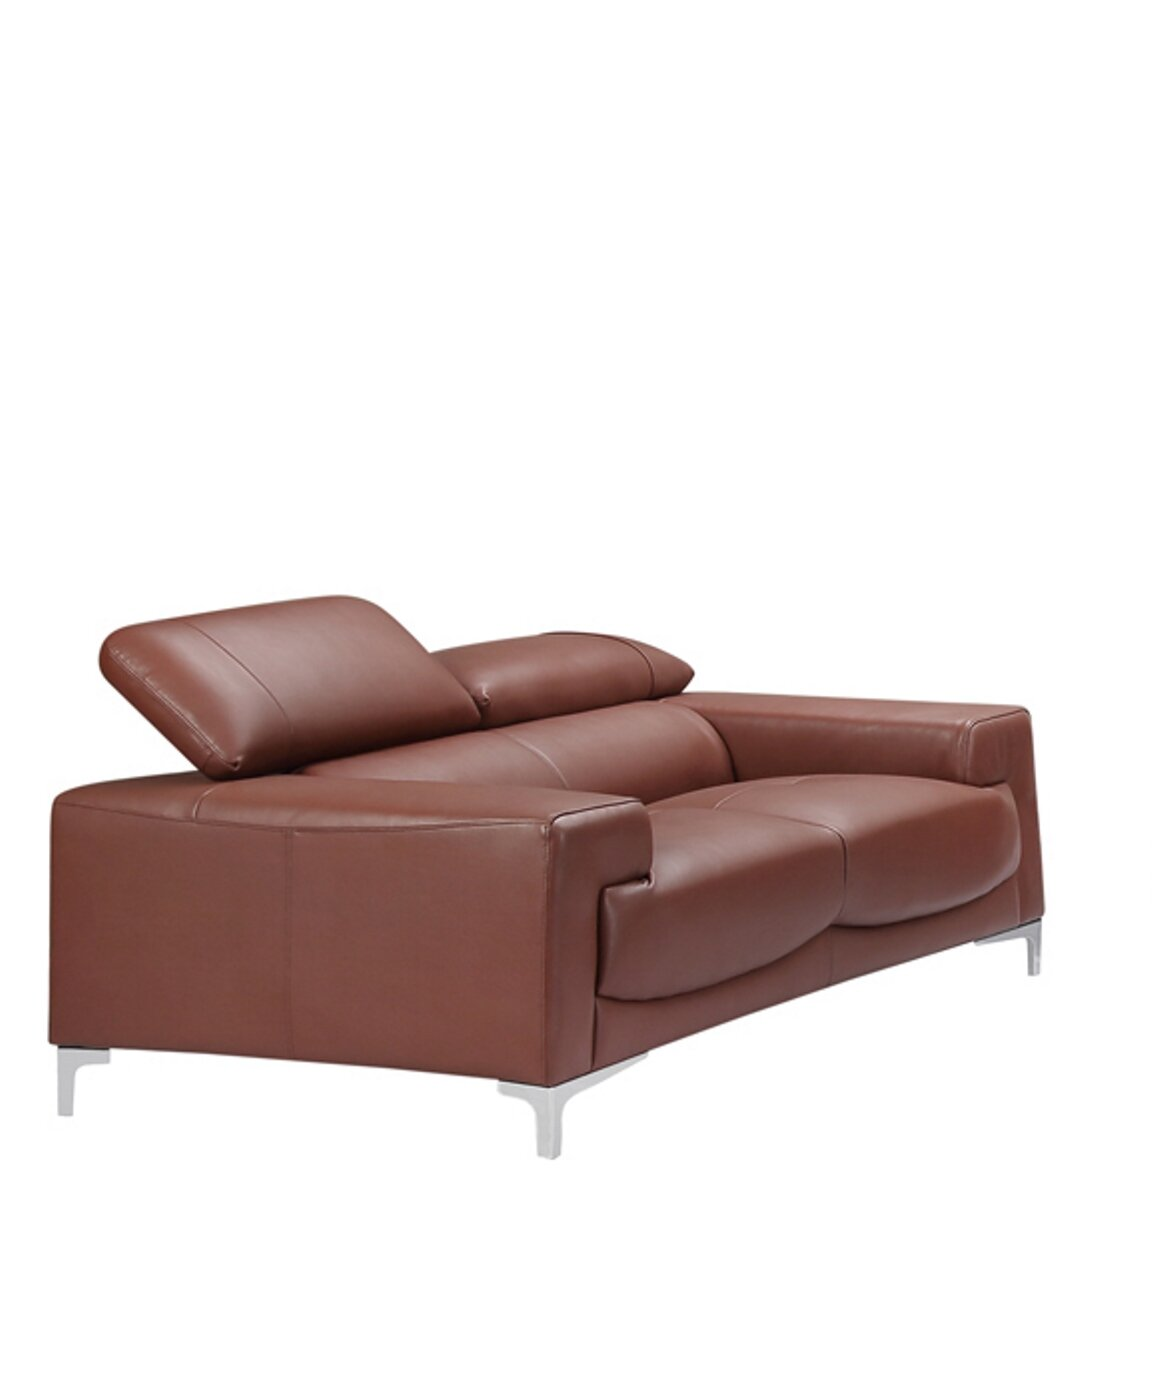 Stupendous Tipton Modern Saddle Leather Loveseat Gmtry Best Dining Table And Chair Ideas Images Gmtryco